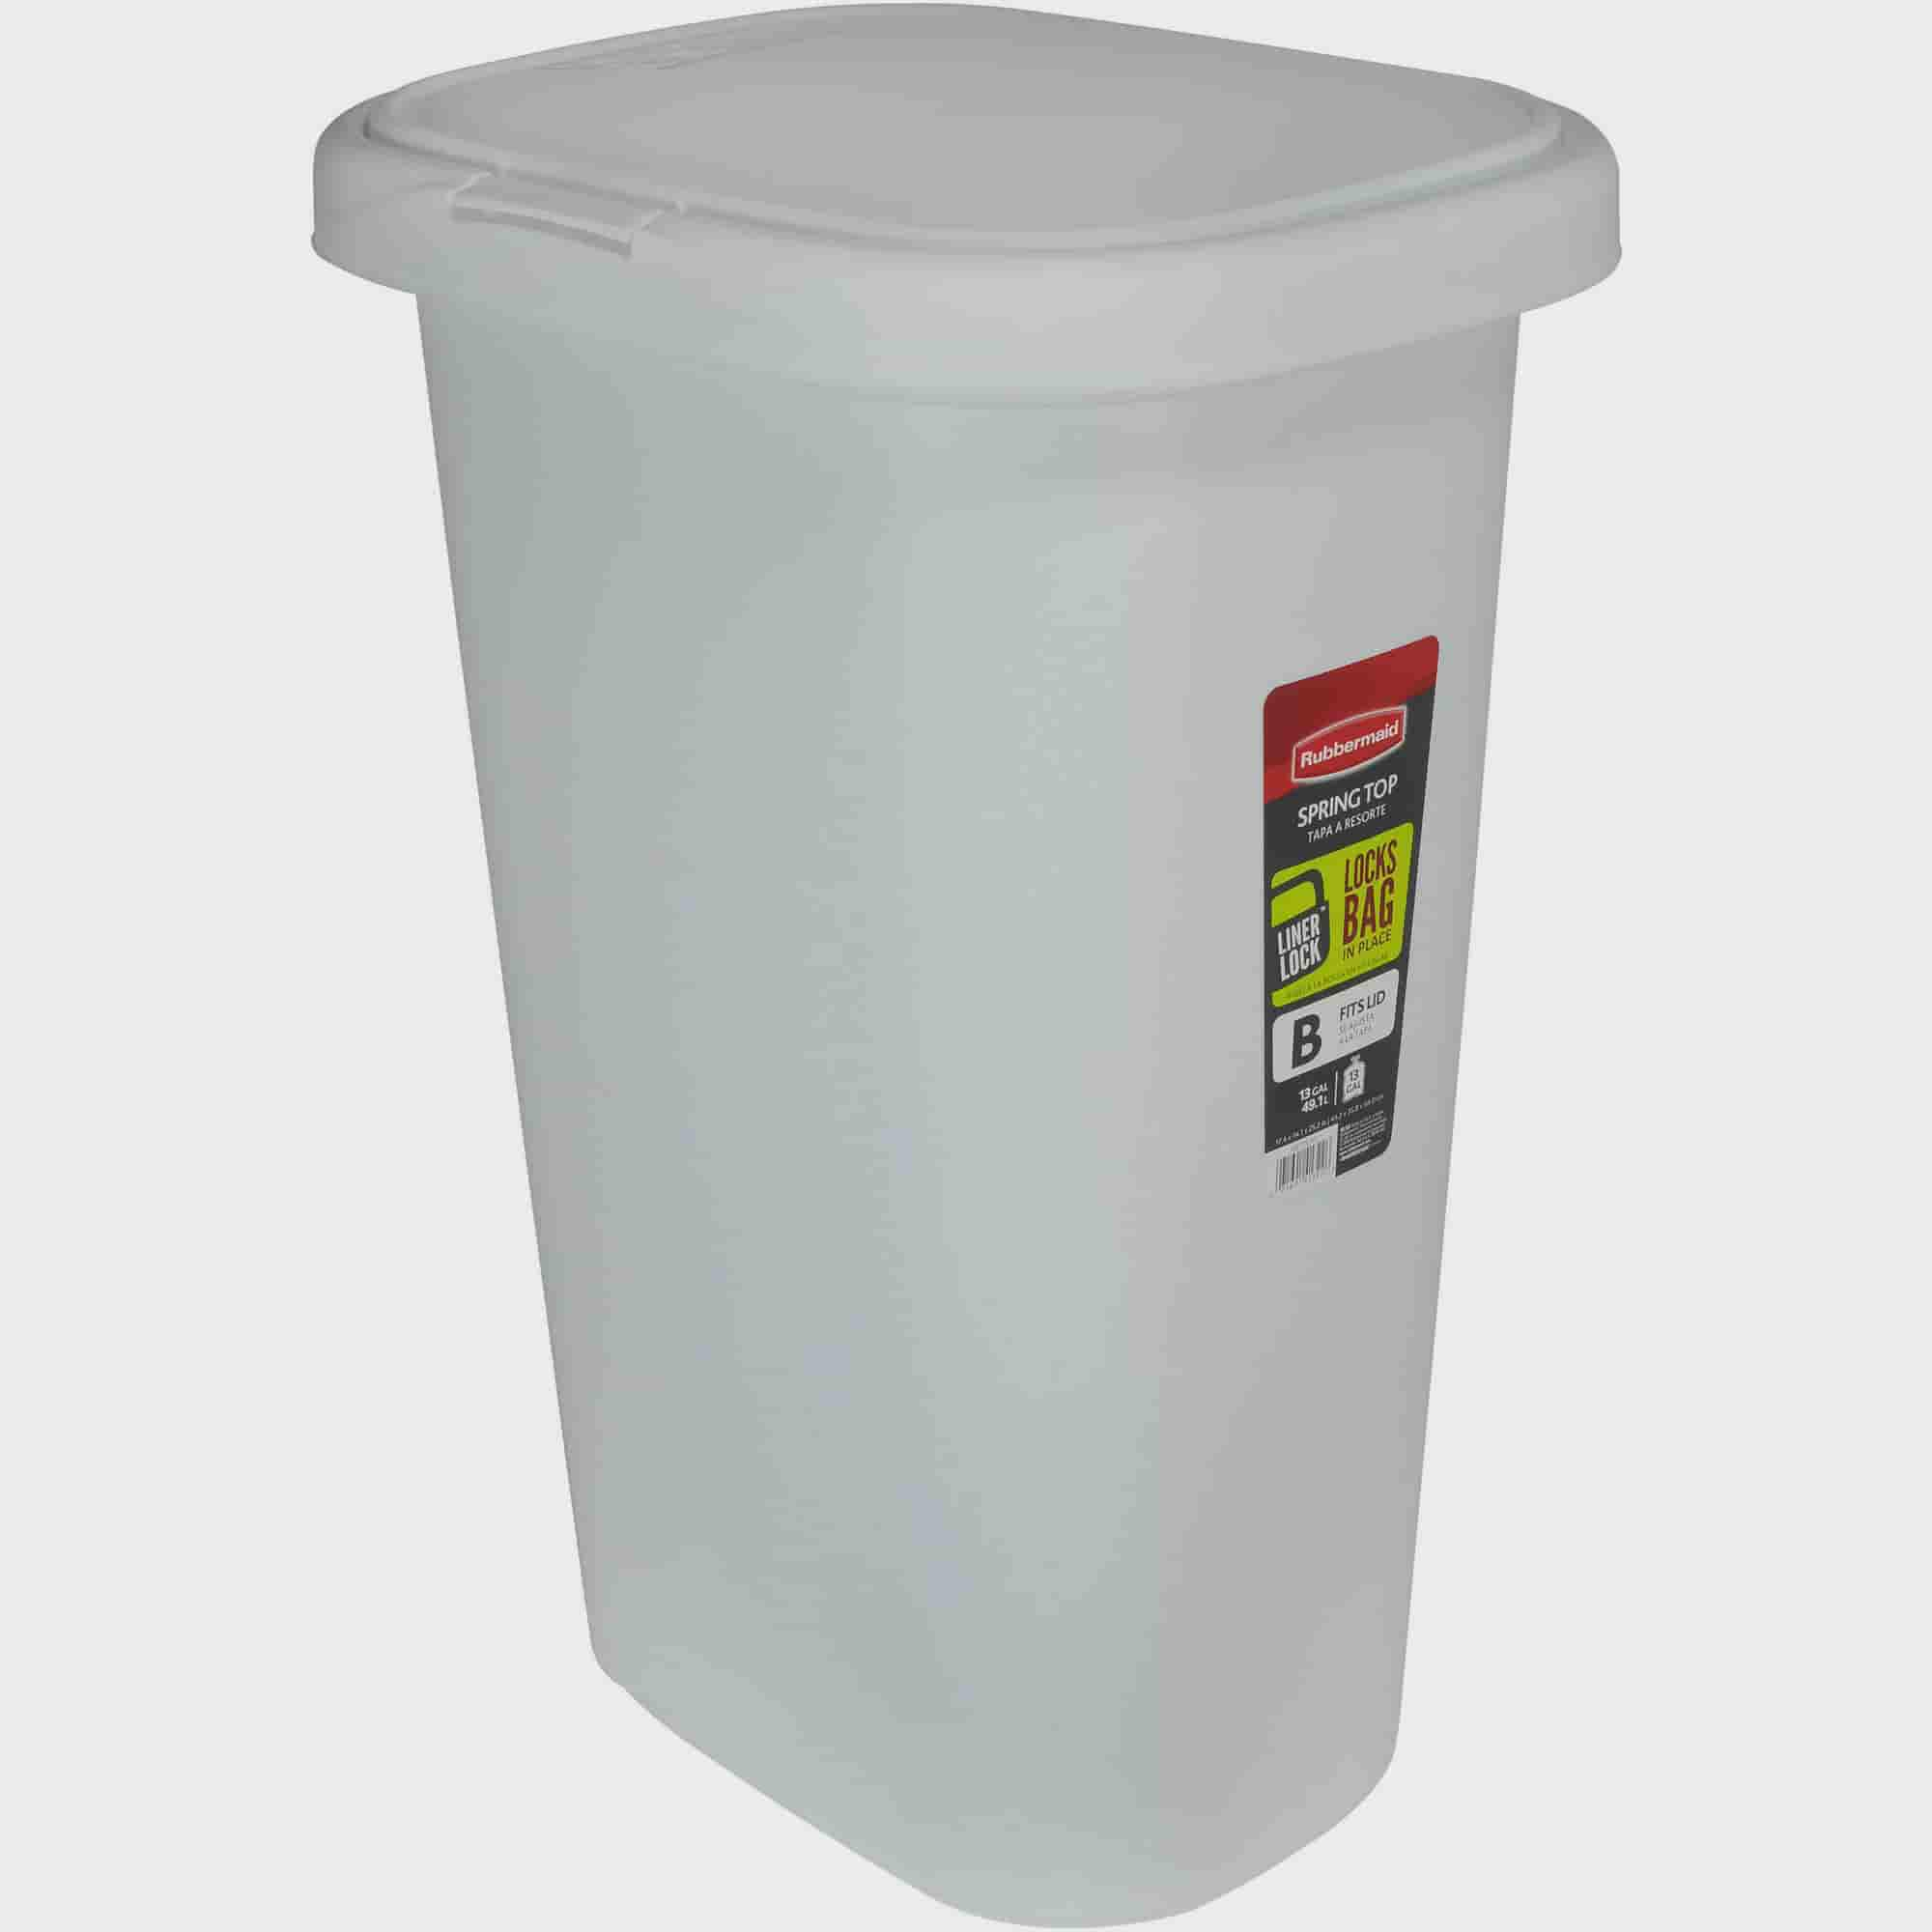 rubbermaid linerlock spring top trash can, 13 gal, white - walmart